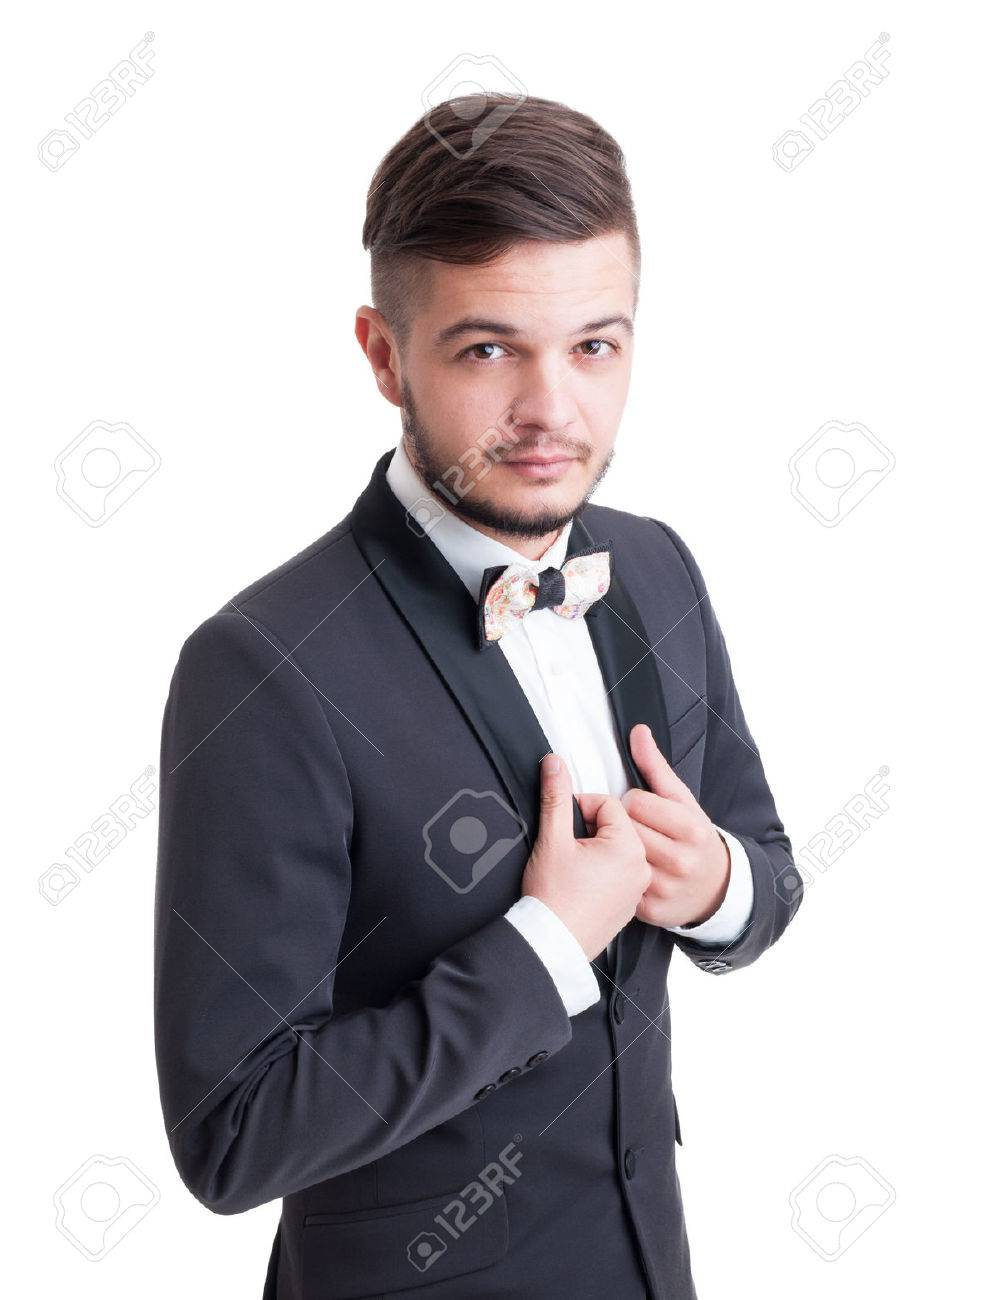 cheap for sale 2019 hot sale huge sale Handsome male model wearing tuxedo jacket and colored bow tie..